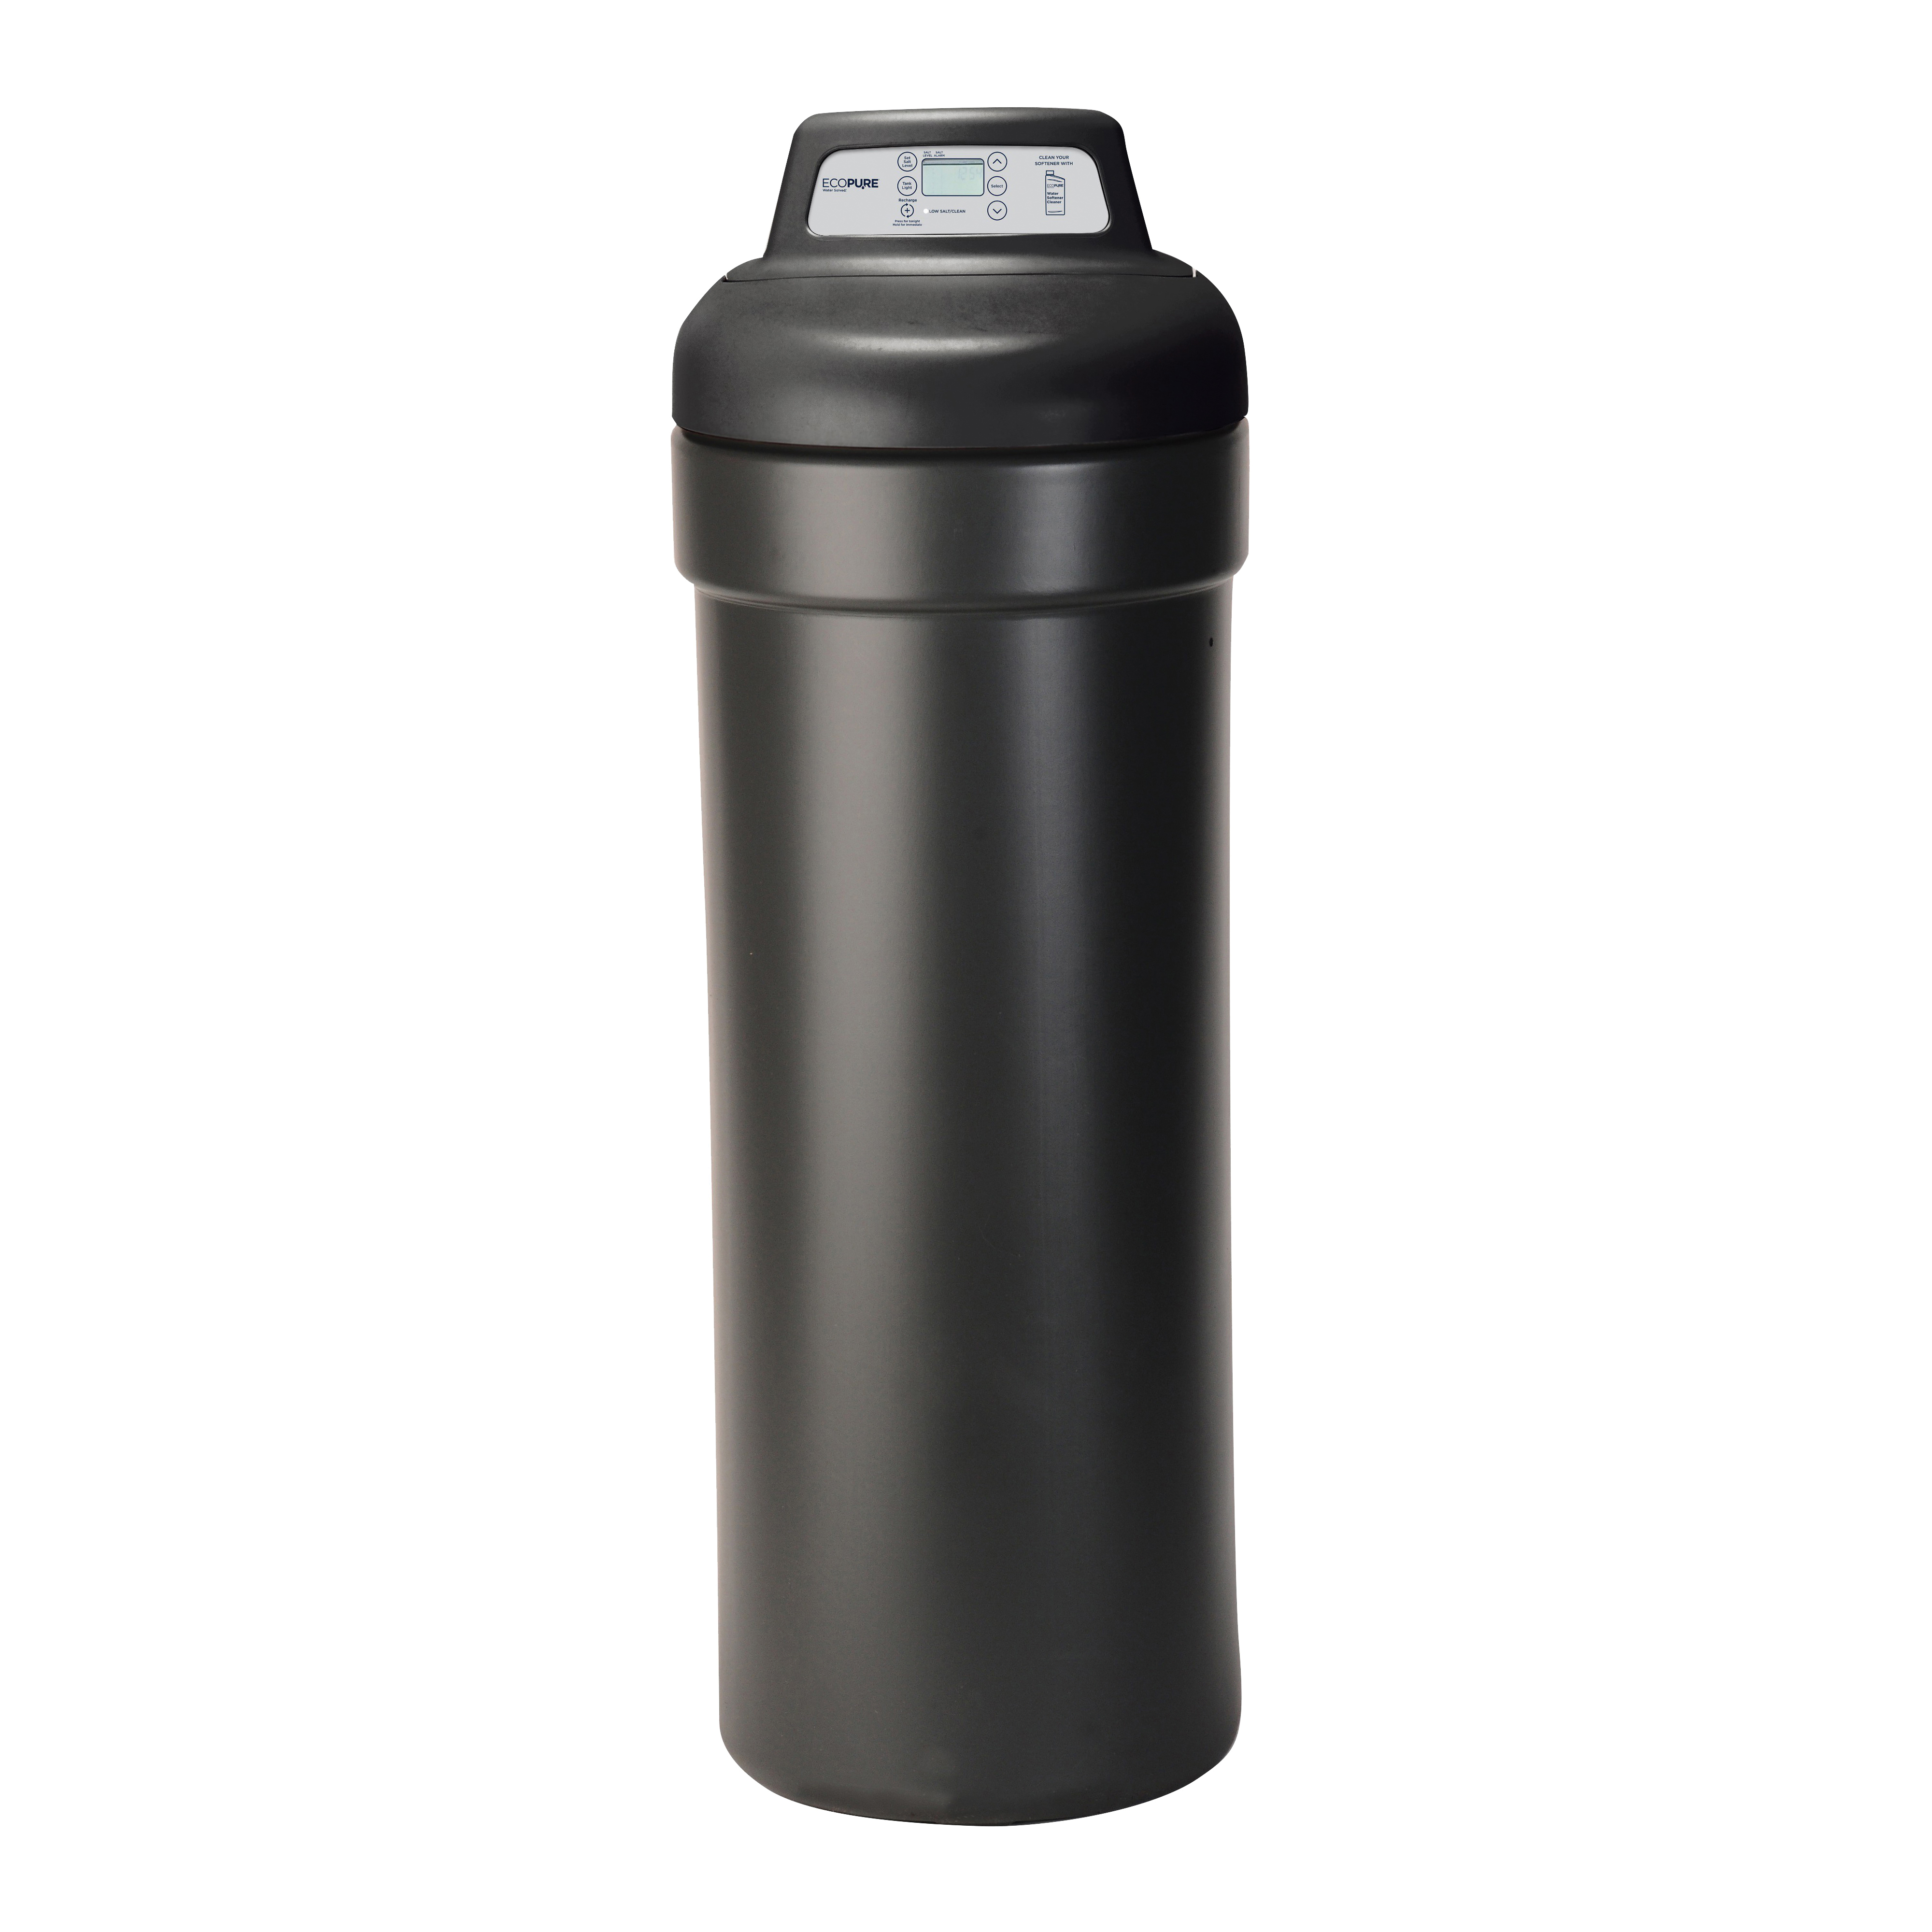 Picture of Ecowater System EP31007/EP7130 Water Softener, 30,000 Grain, 14-1/2 in W, 44-3/4 in H, 21-1/4 in D